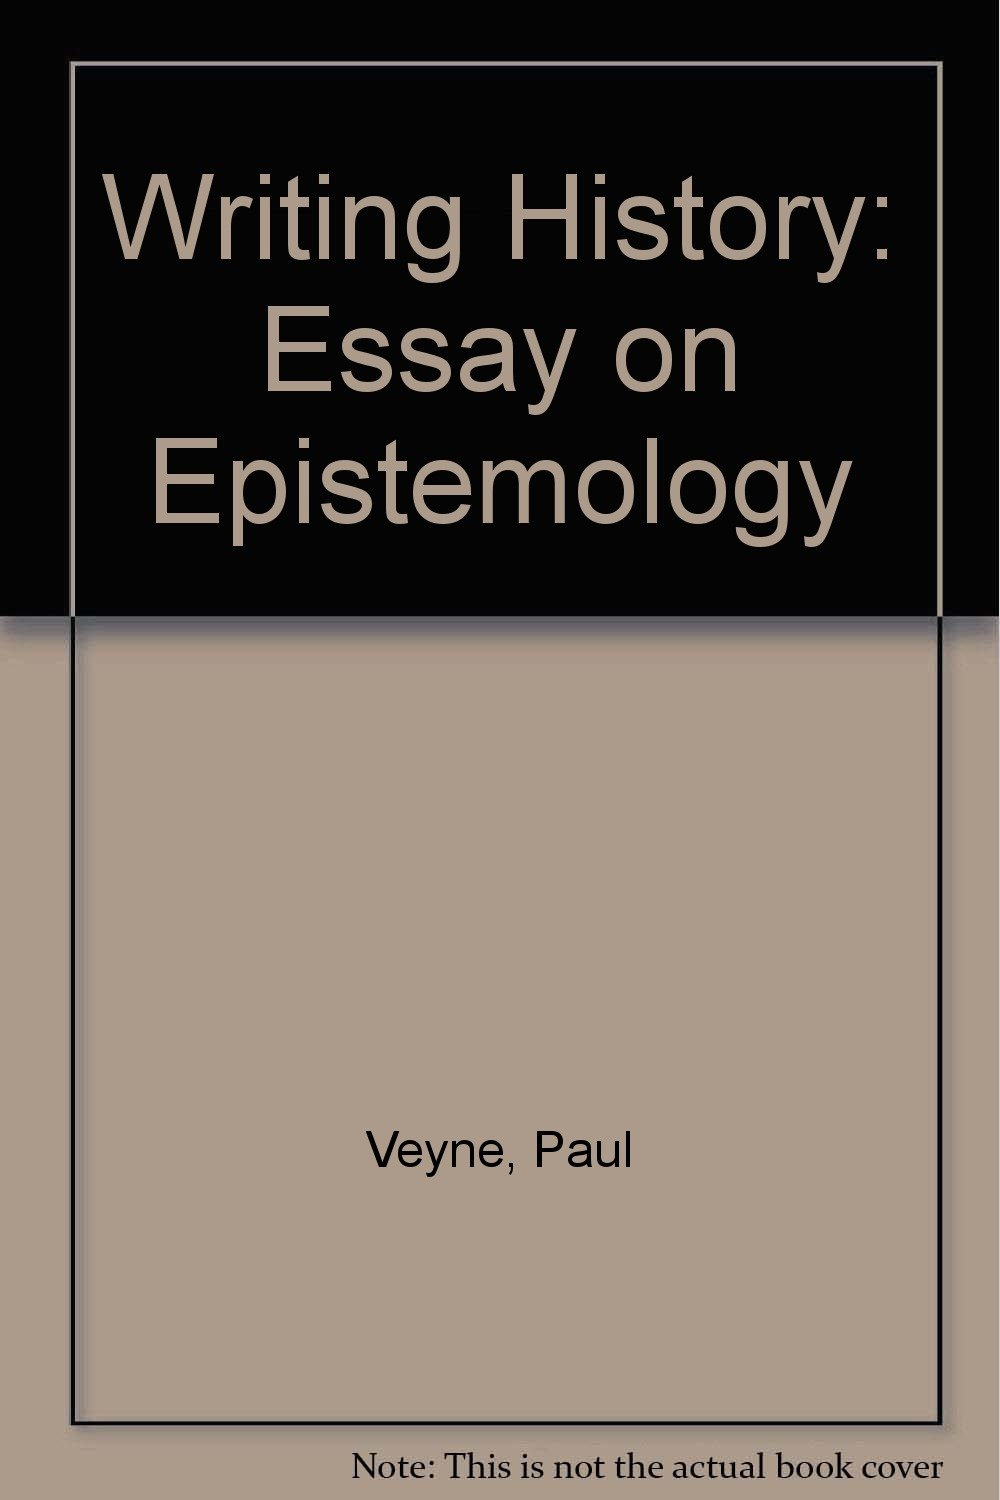 writing history essay on epistemology paul veyne  writing history essay on epistemology paul veyne 9780819550675 com books